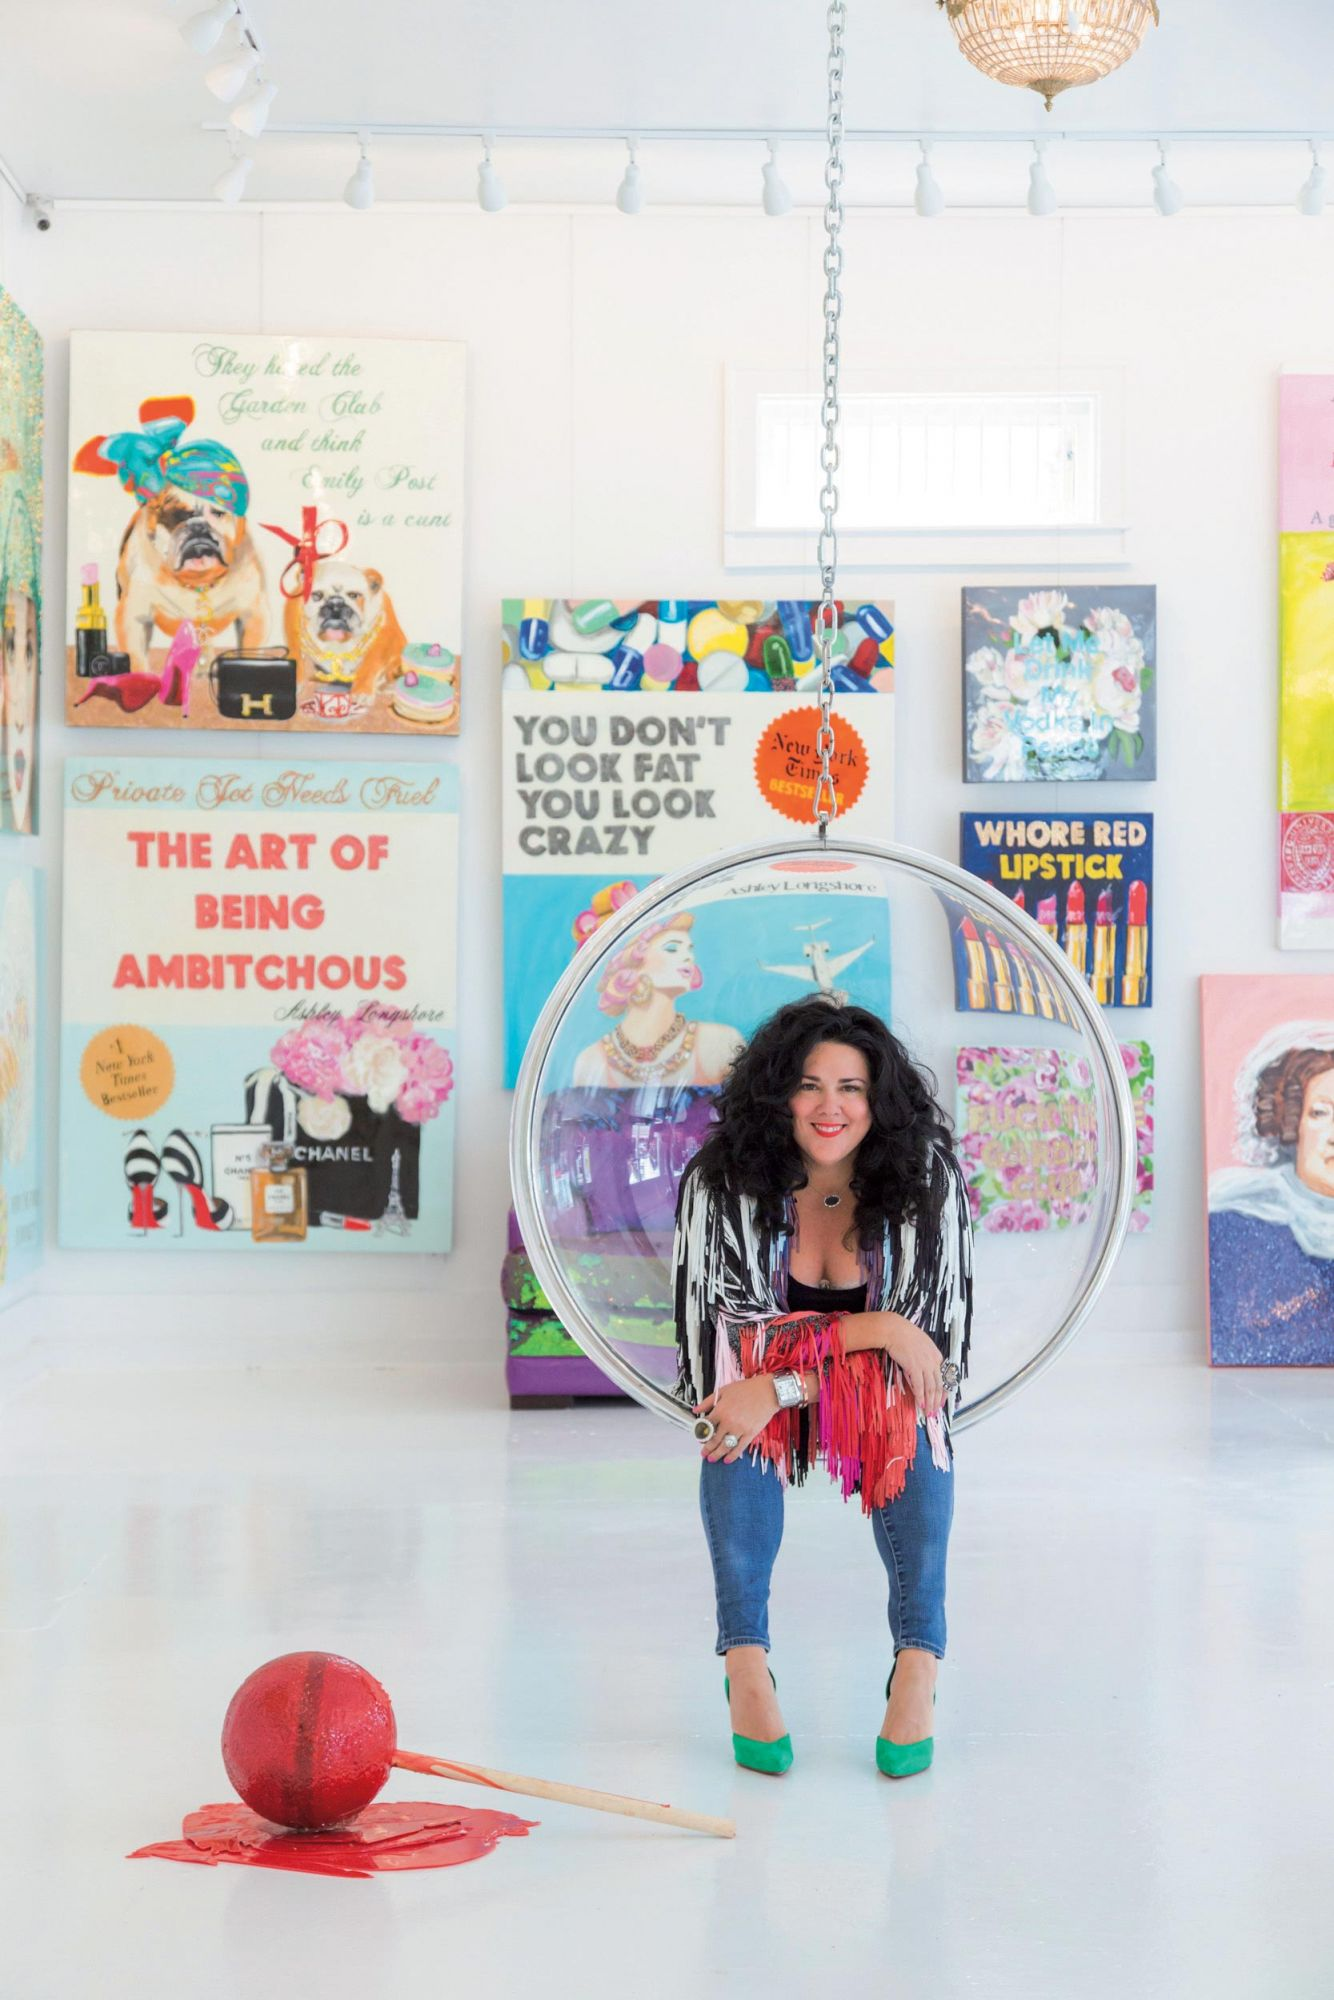 Artist Ashley Longshore Just Wants To Have Fun